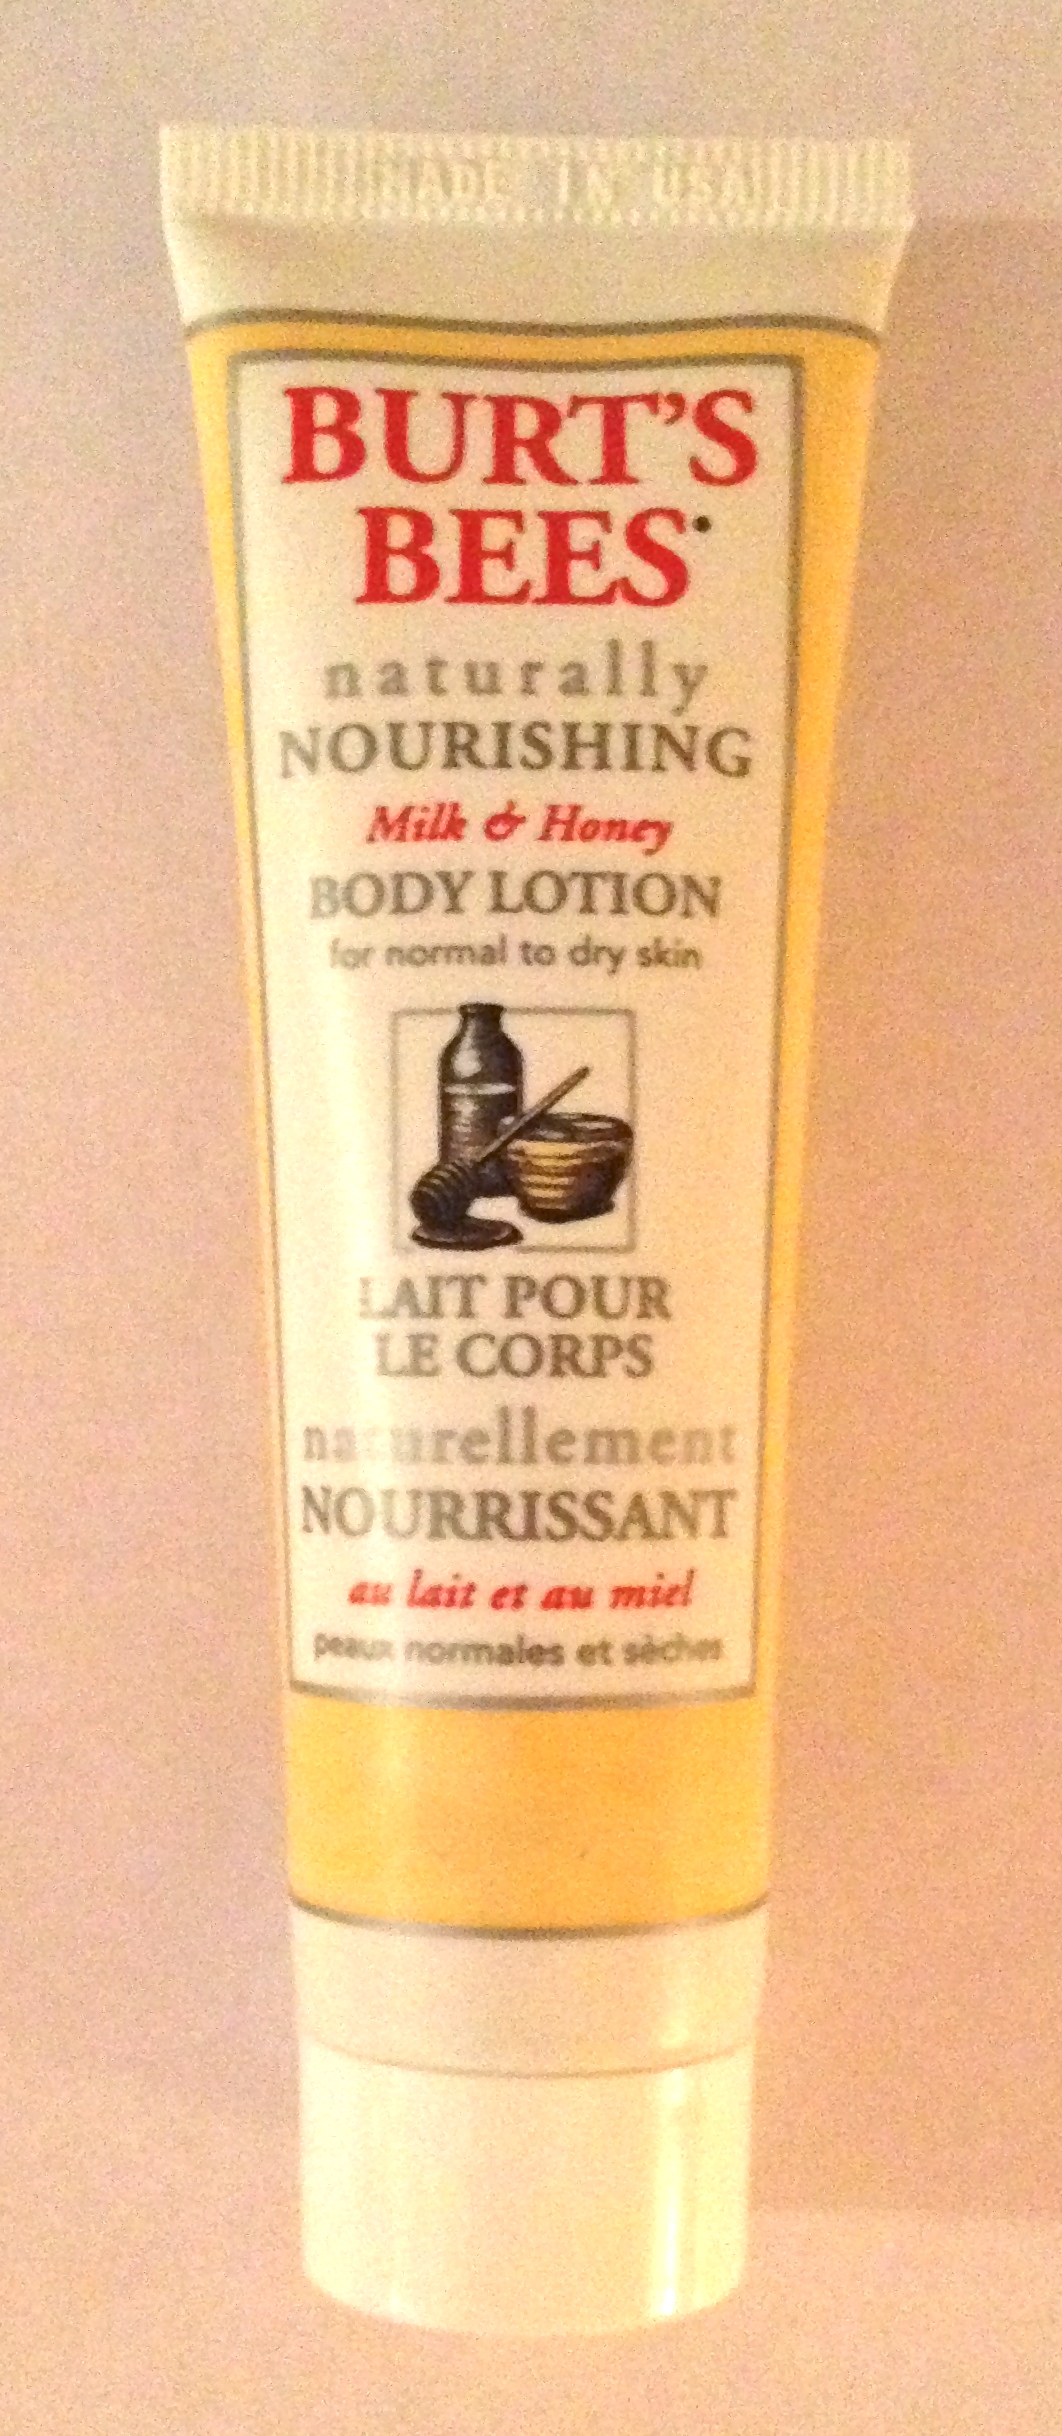 Burt's Bees Milk and Honey Body Lotion review